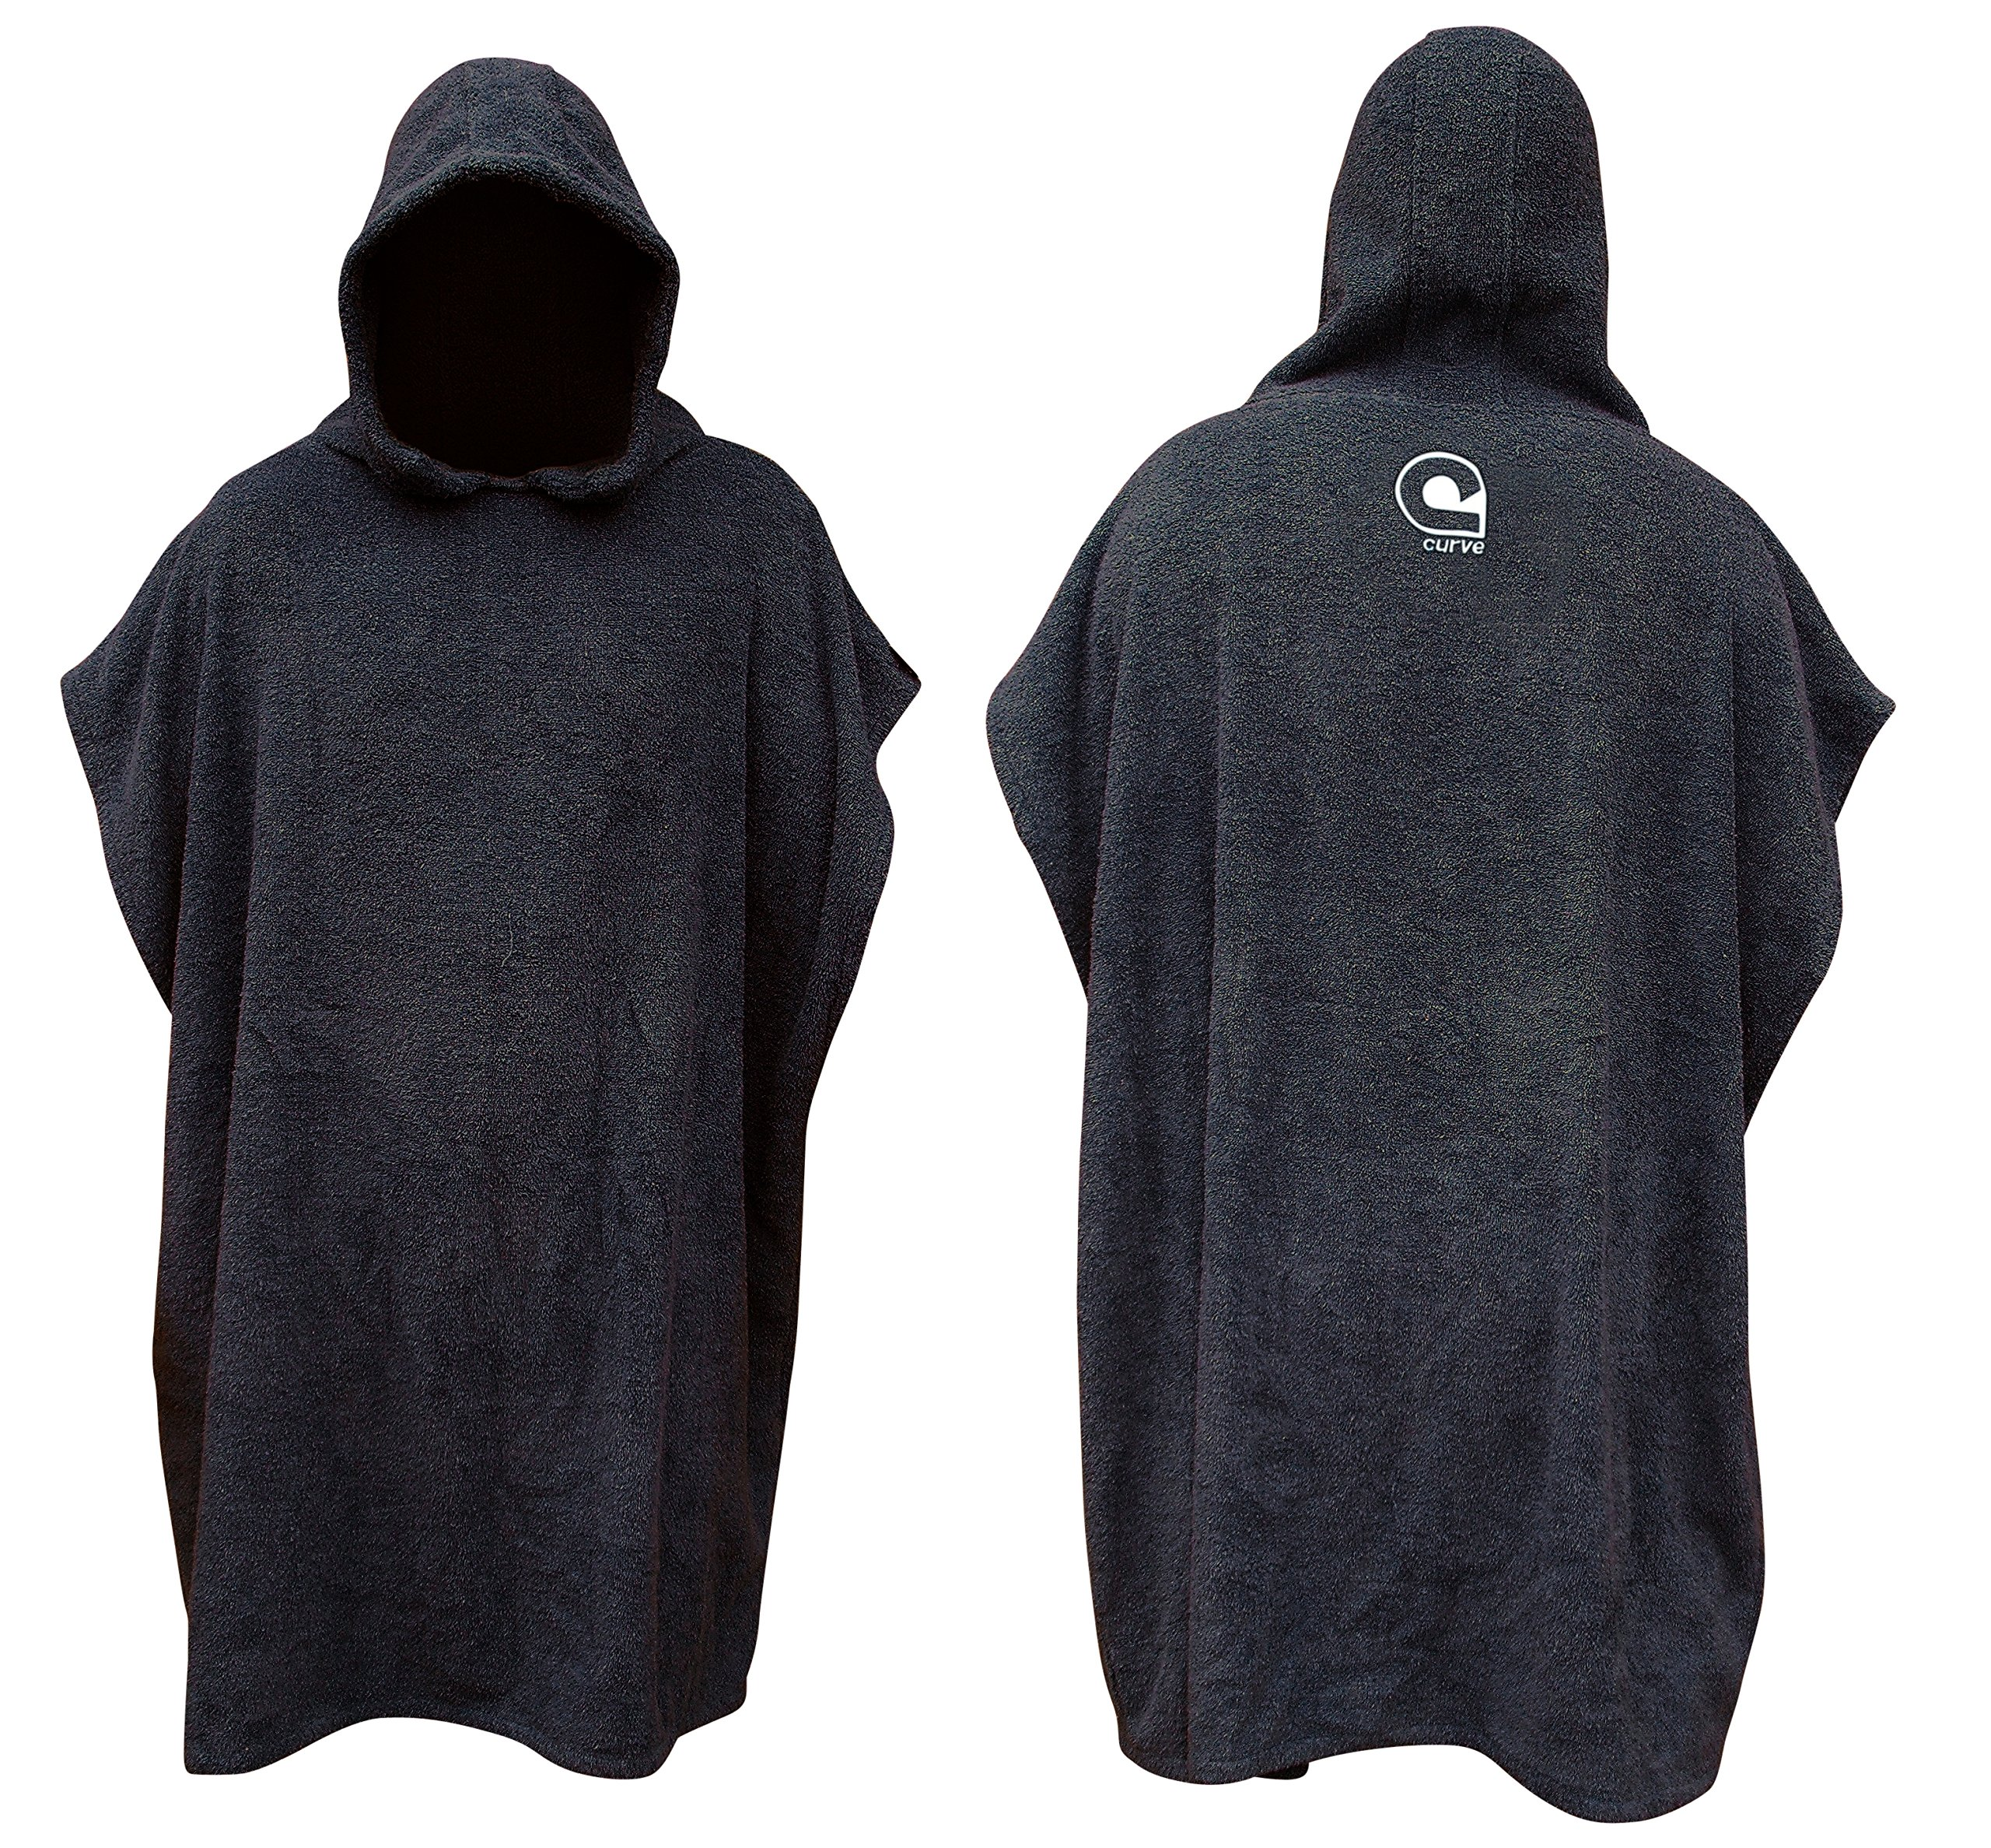 Swimming Robe Surf Beach Poncho in 100% COTTON Hooded Towel w adjustable sleeves [CHOOSE COLOR] (Charcoal, Child)